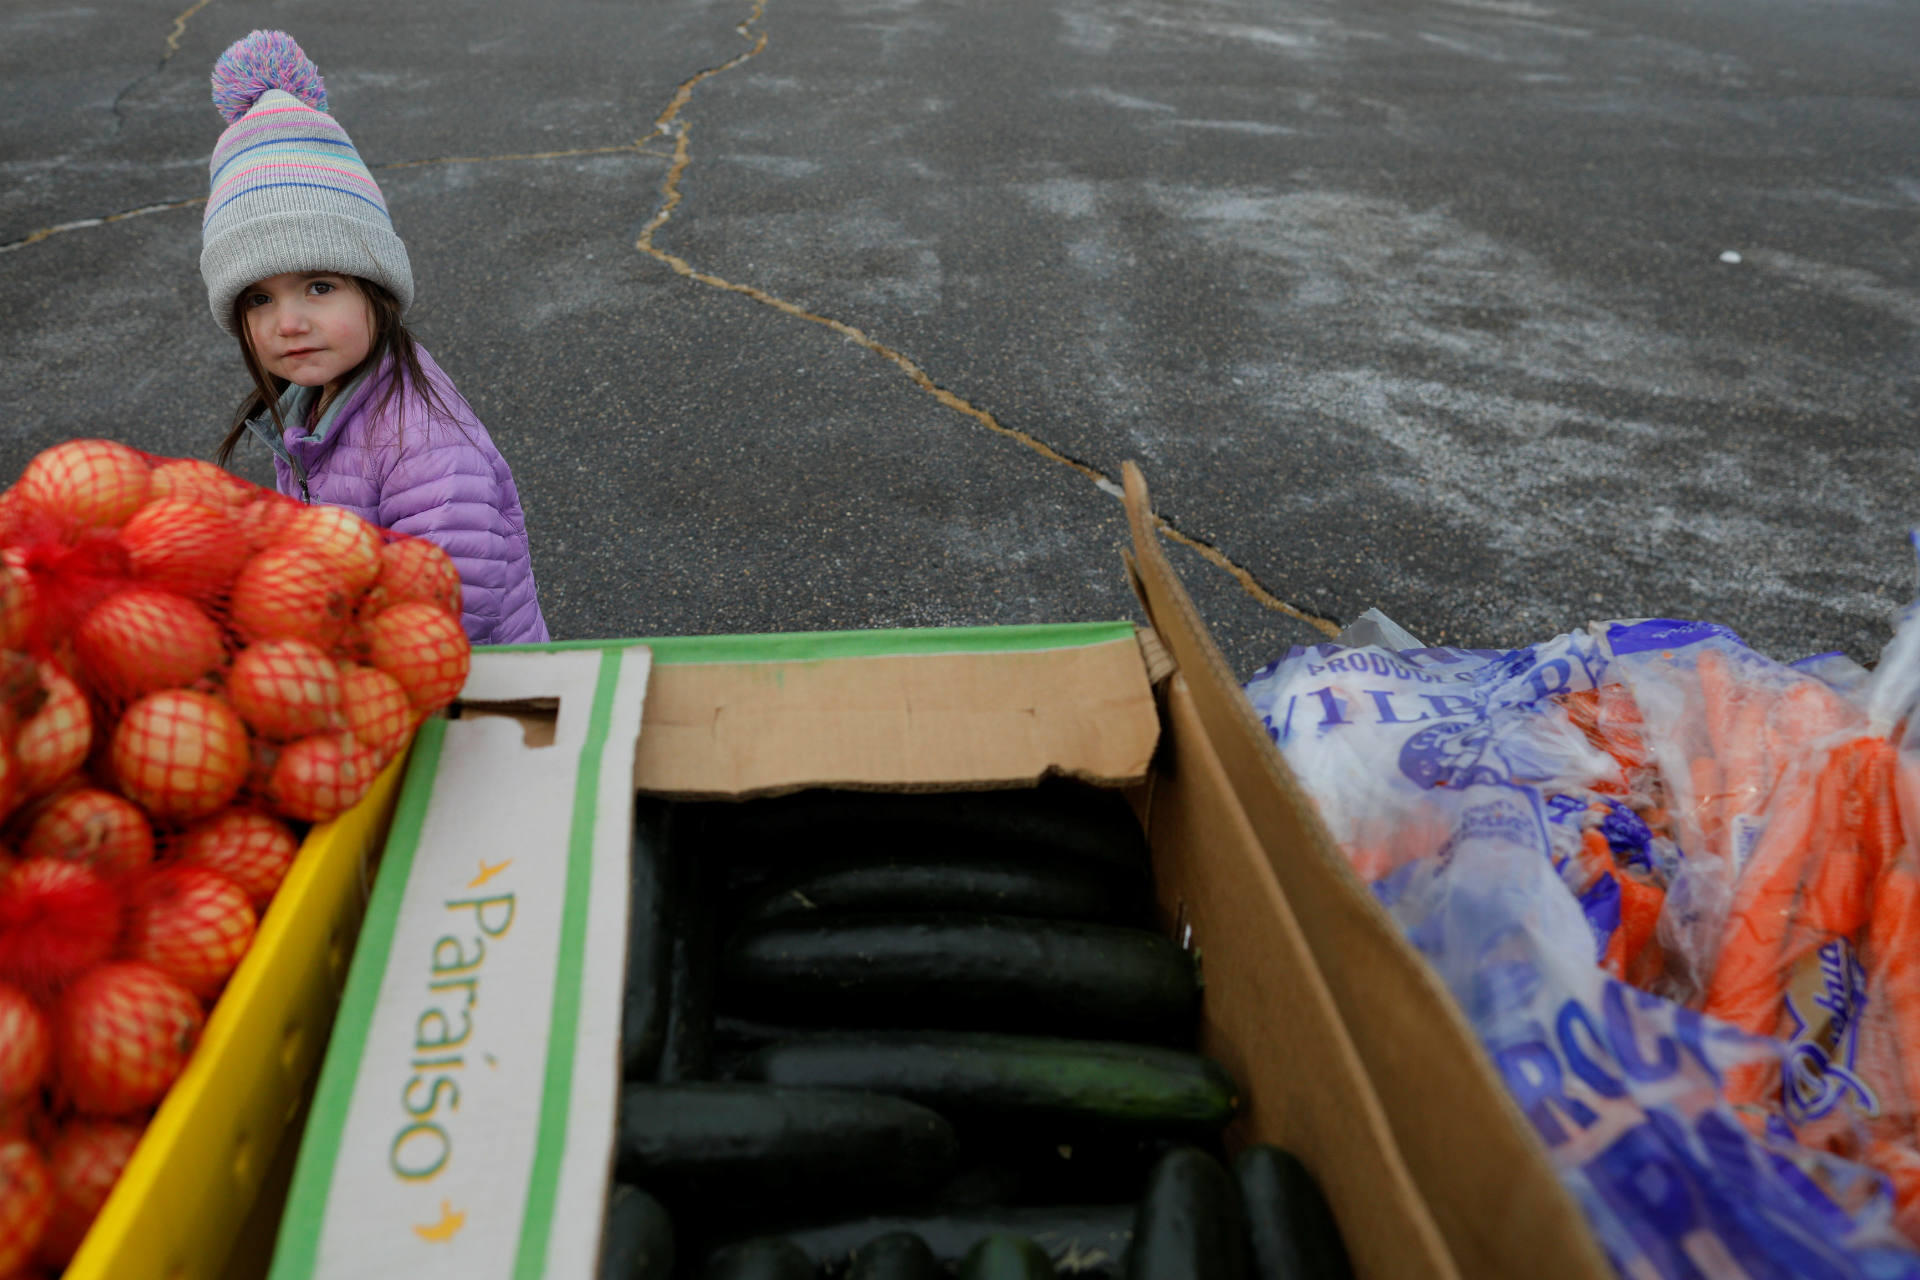 """Three-year-old Greta Croteau, the daughter of a Coast Guard member working without pay, helps her mother pick up items distributed by Gather food pantry at the US Coast Guard Portsmouth Harbor base in New Castle, New Hampshire, on January 23, 2019. Coast Guard Admiral Commandant Karl Schultz on Twitter this week called it """"unacceptable that Coast Guard men and women have to rely on food pantries and donations to get through day-to-day life as servicemembers"""" working without pay. """"Our #USCG members sail across the world to protect US national interests while their loved ones cope w/ financial challenges & no pay at home,"""" Schultz tweeted."""